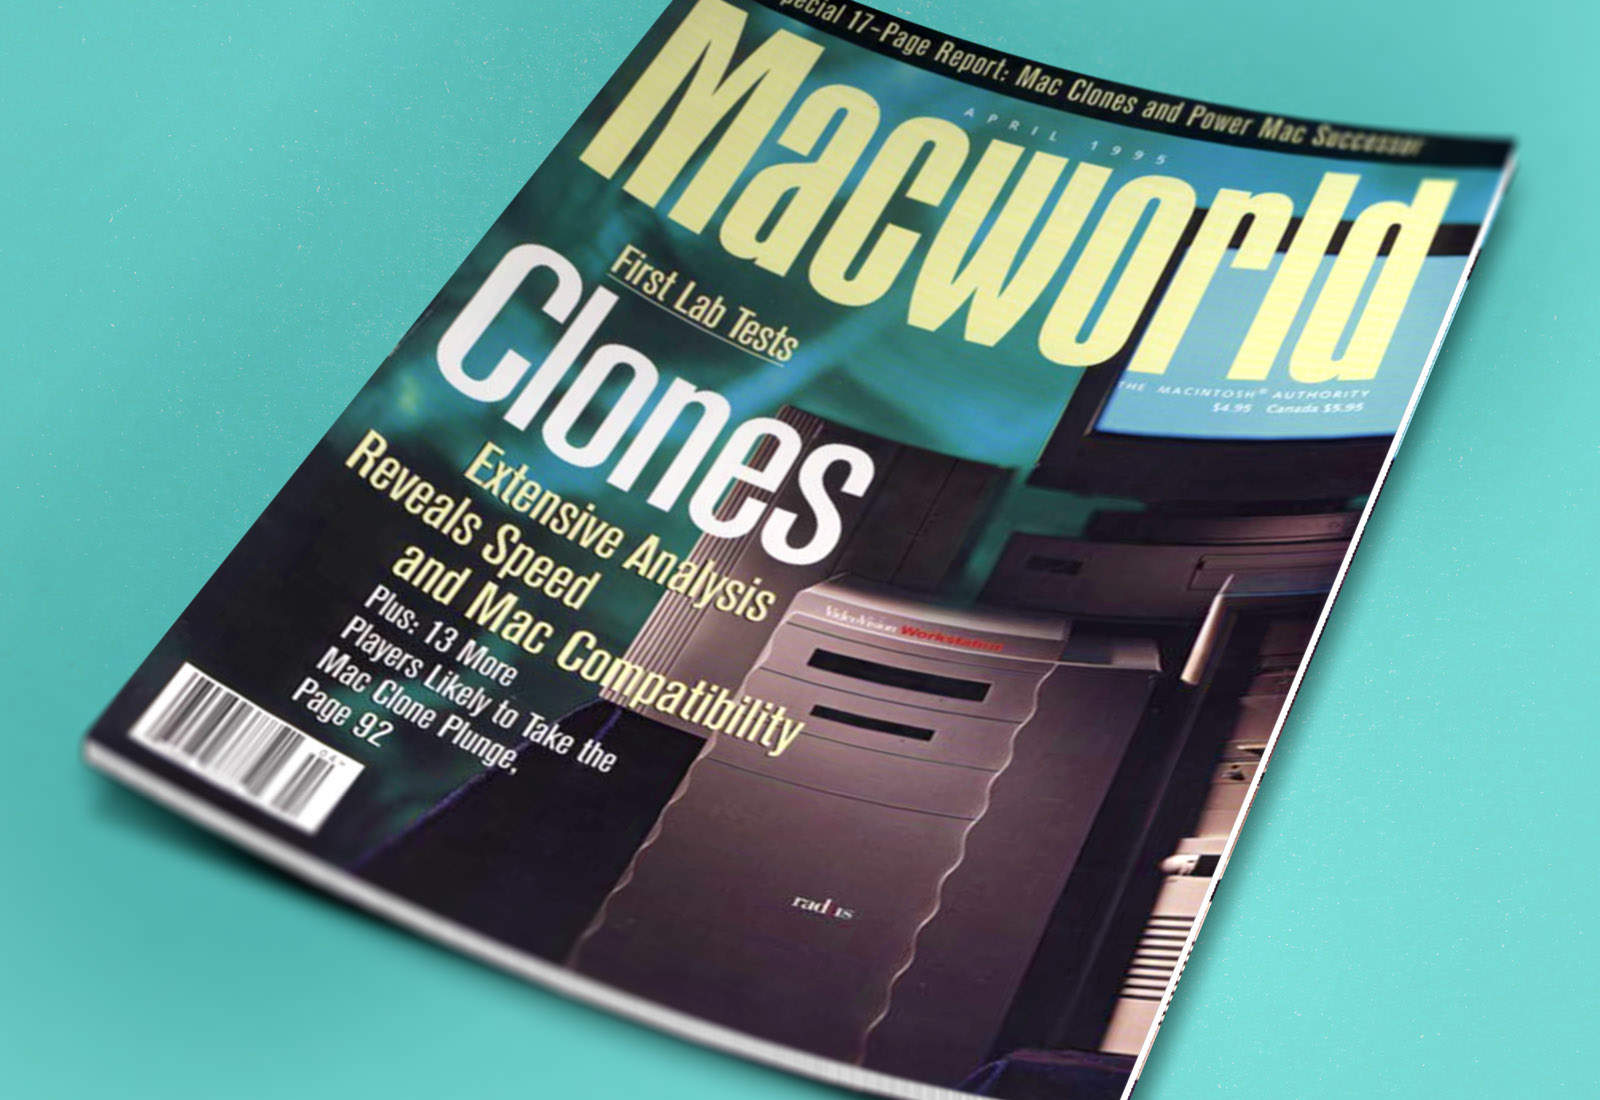 In early 1995, the Mac clone era was about to arrive!